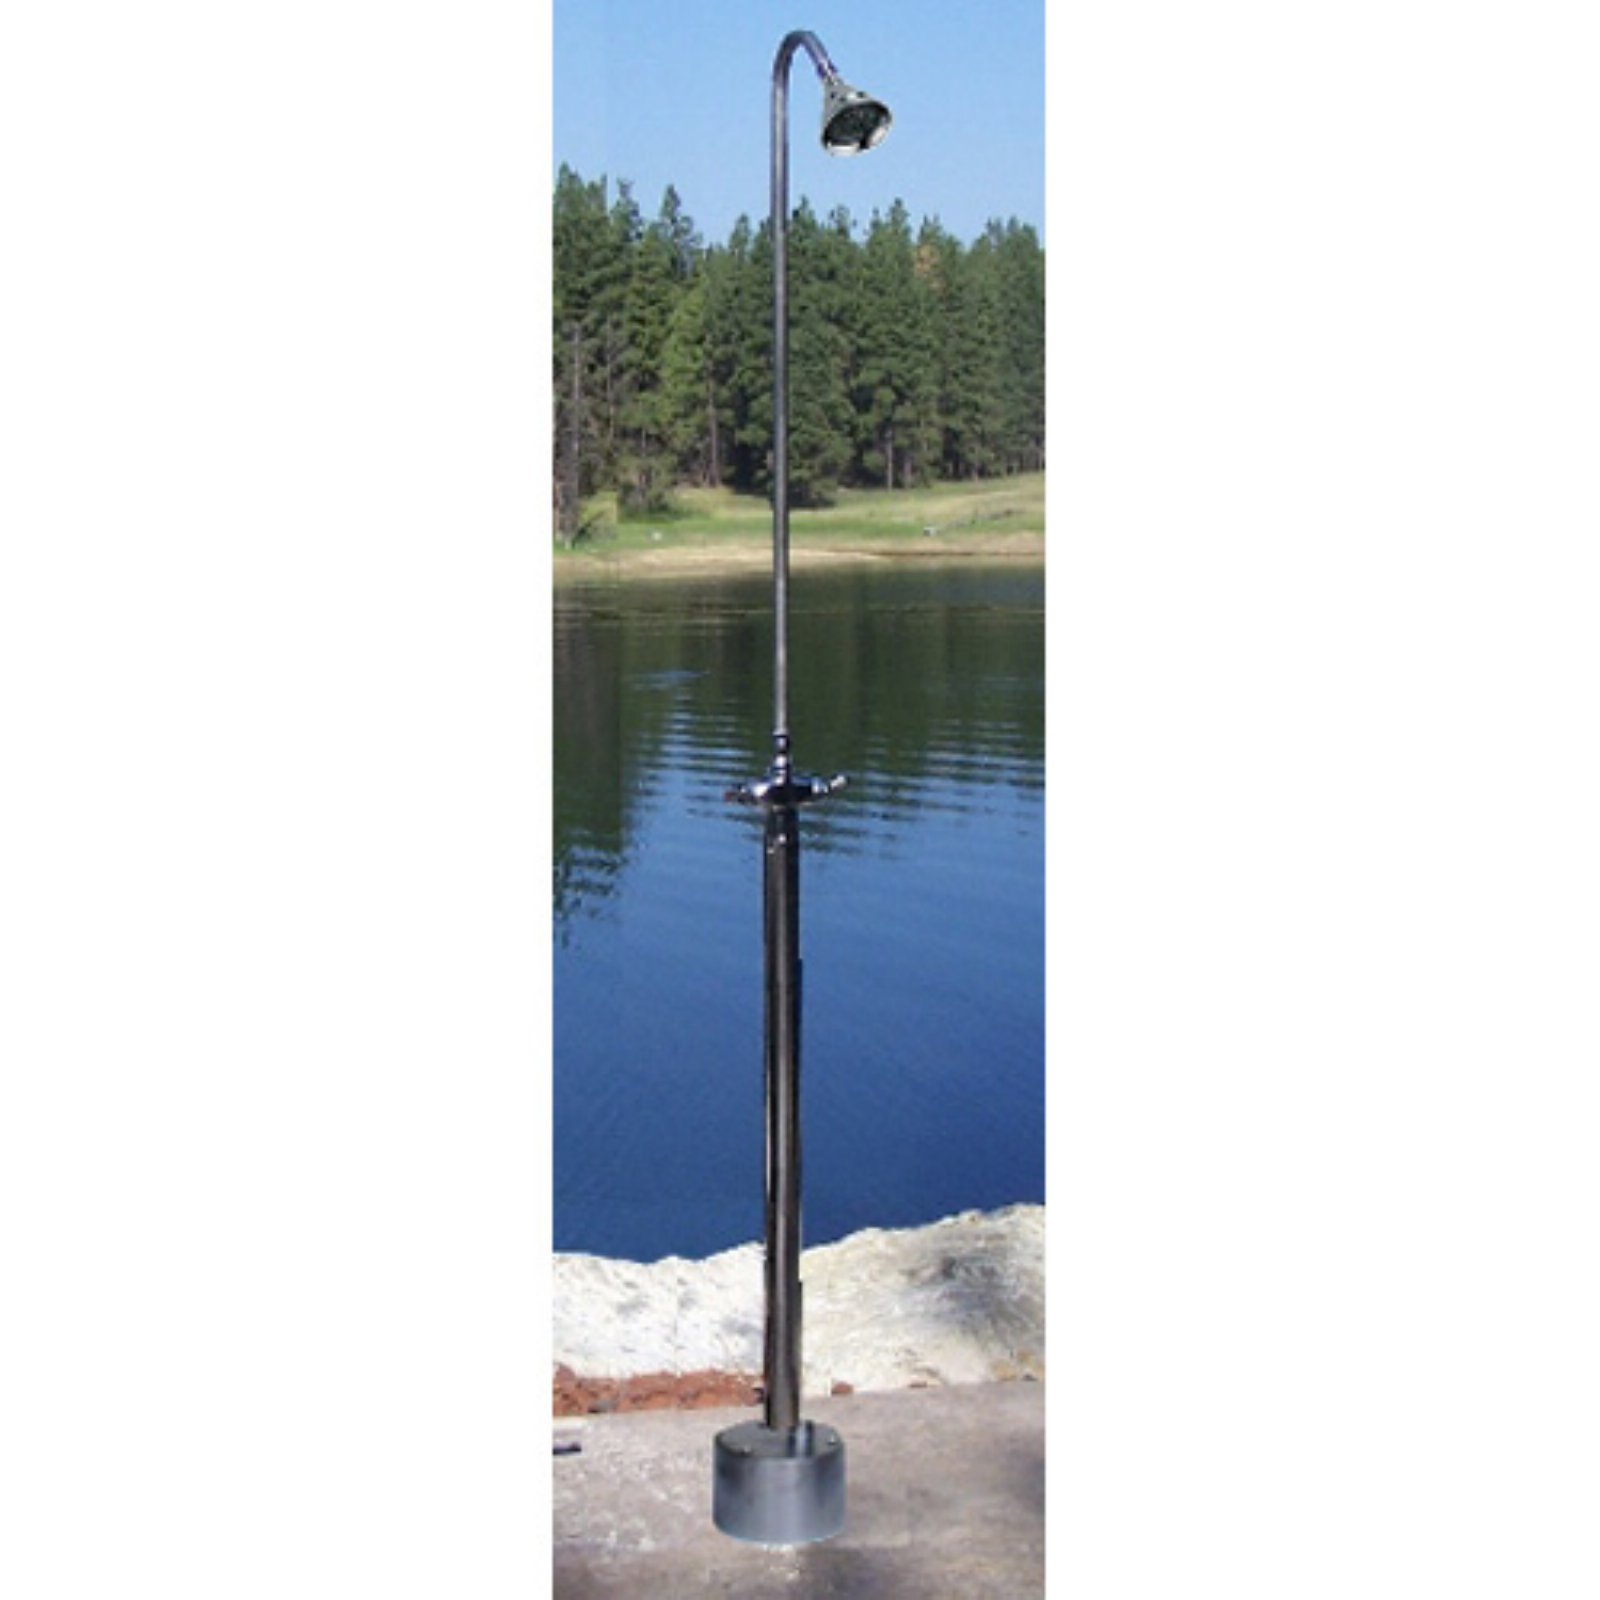 Outdoor Shower Company Hot & Cold Free Standing Shower